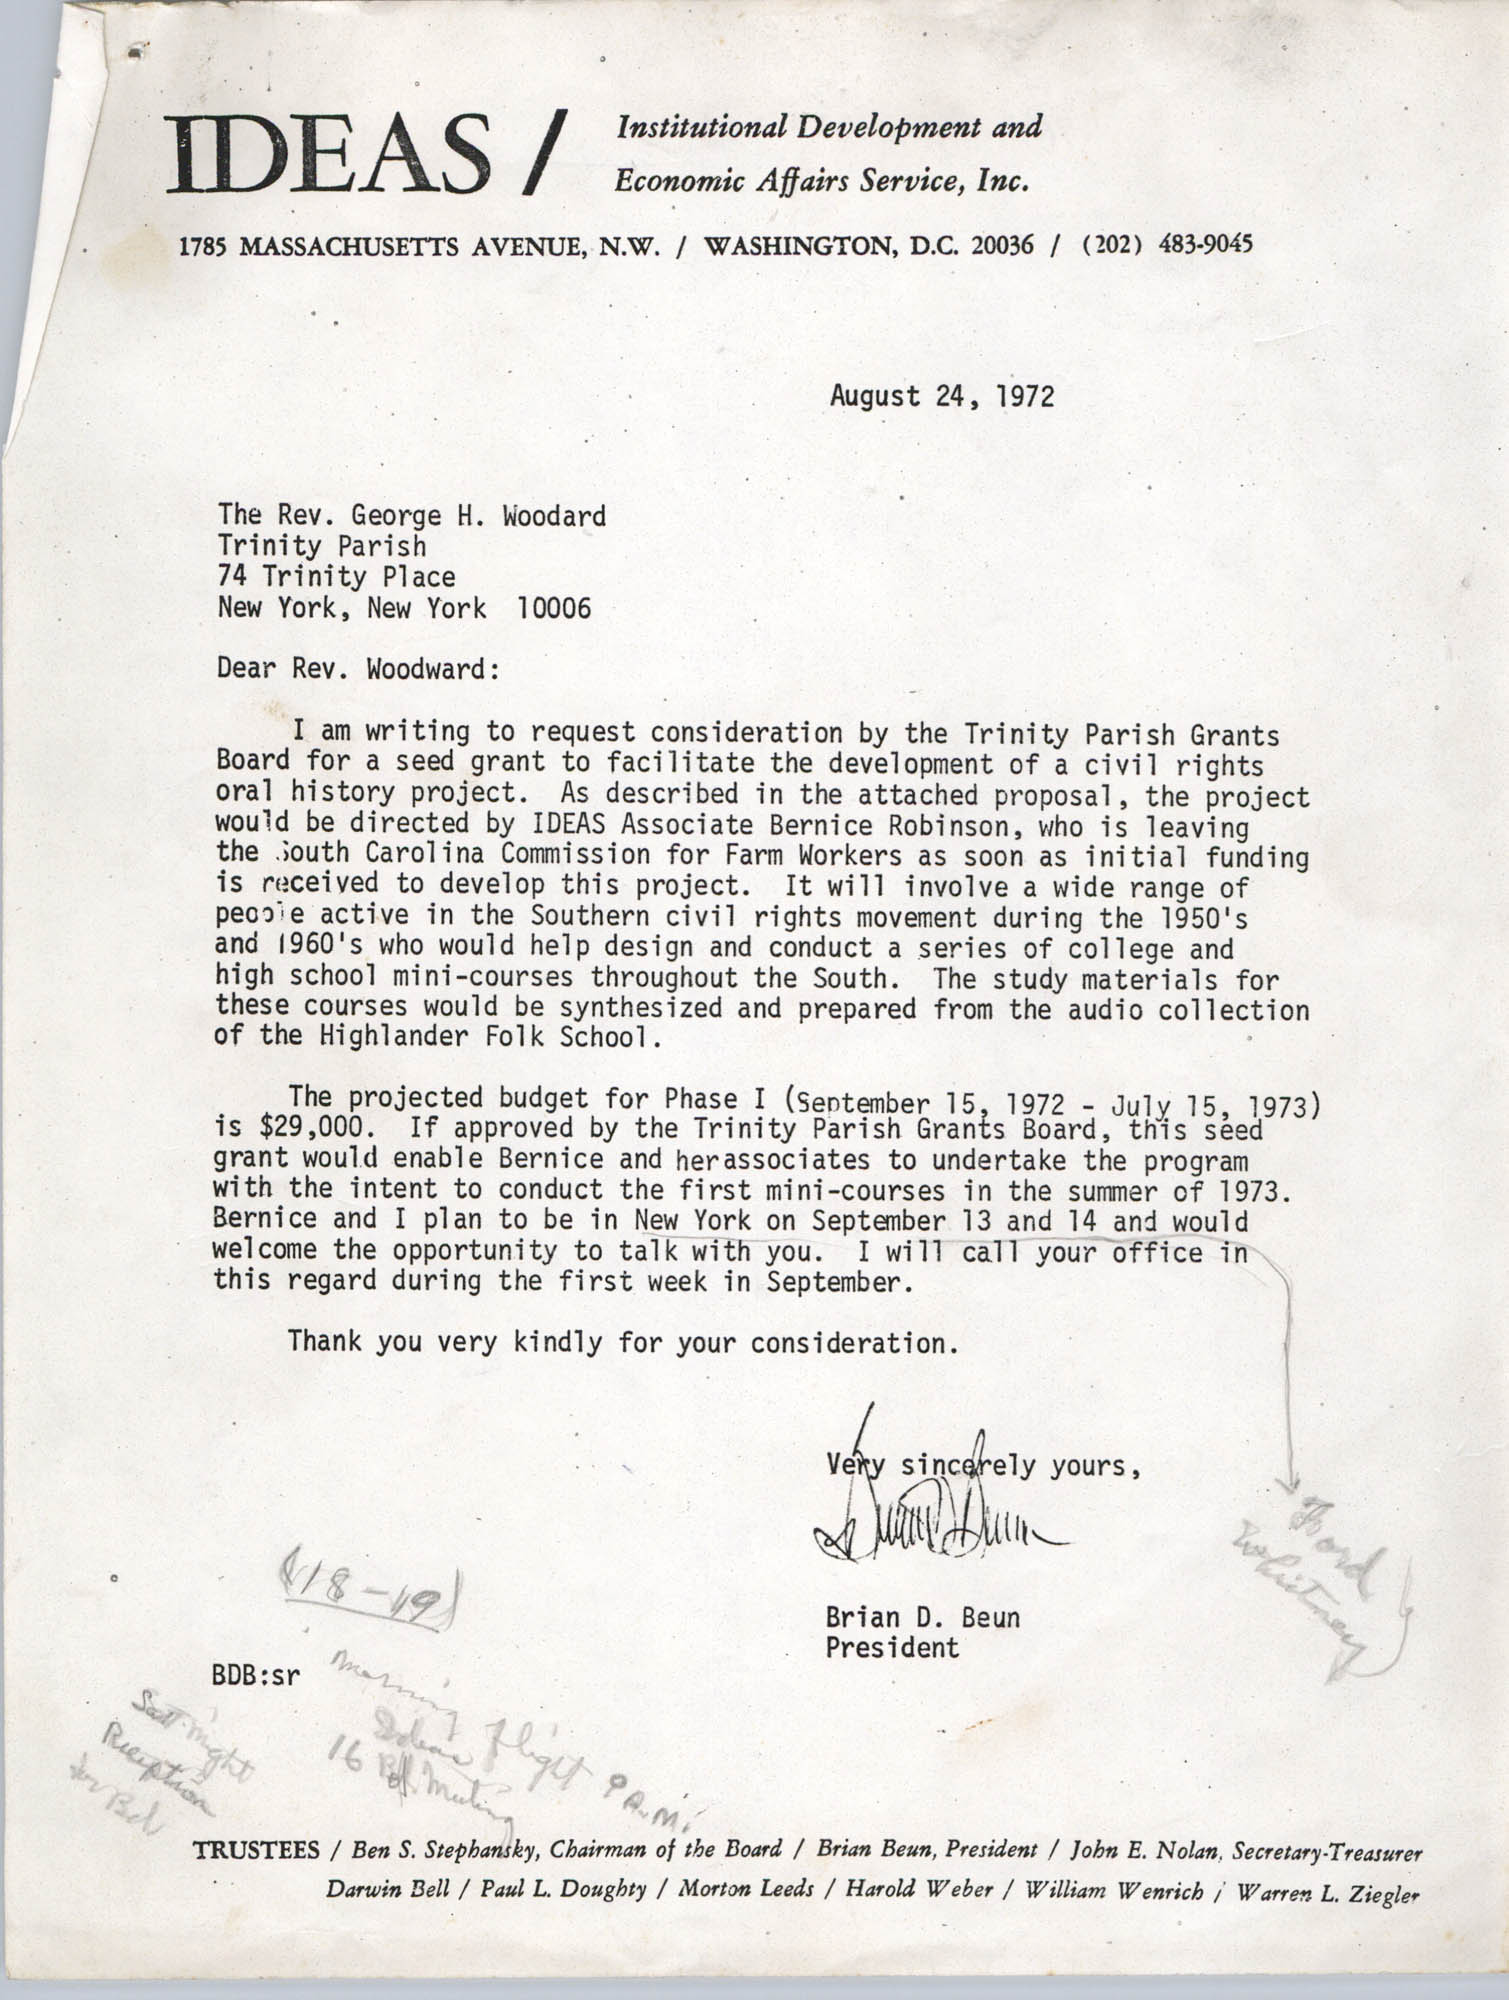 Letter from Brian Beun to George H. Woodard, August 24, 1972